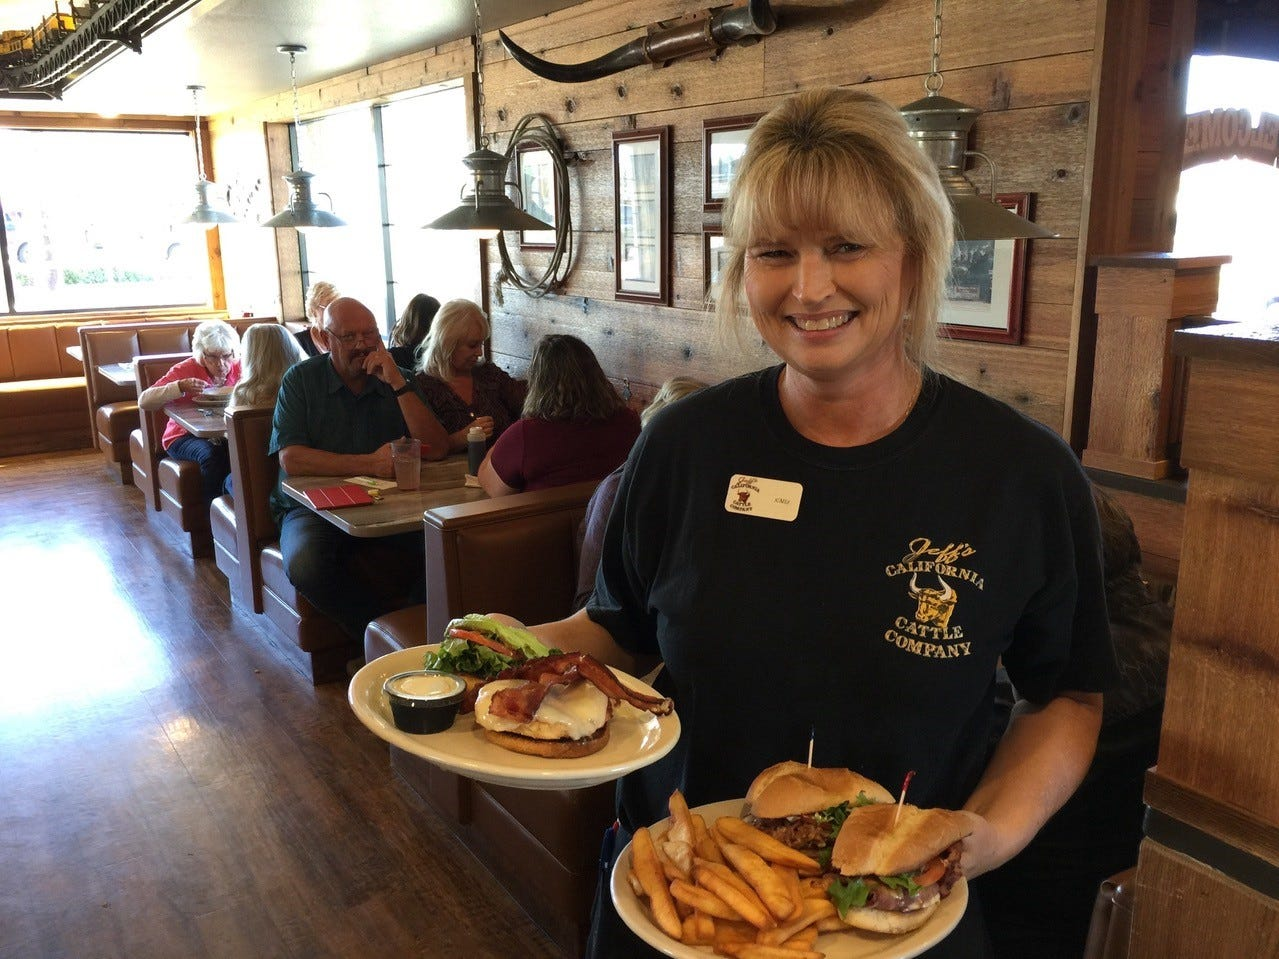 Kimm Jones has worked at Jeff's California Cattle Company for 23 of the 25 years it's been open in Redding.